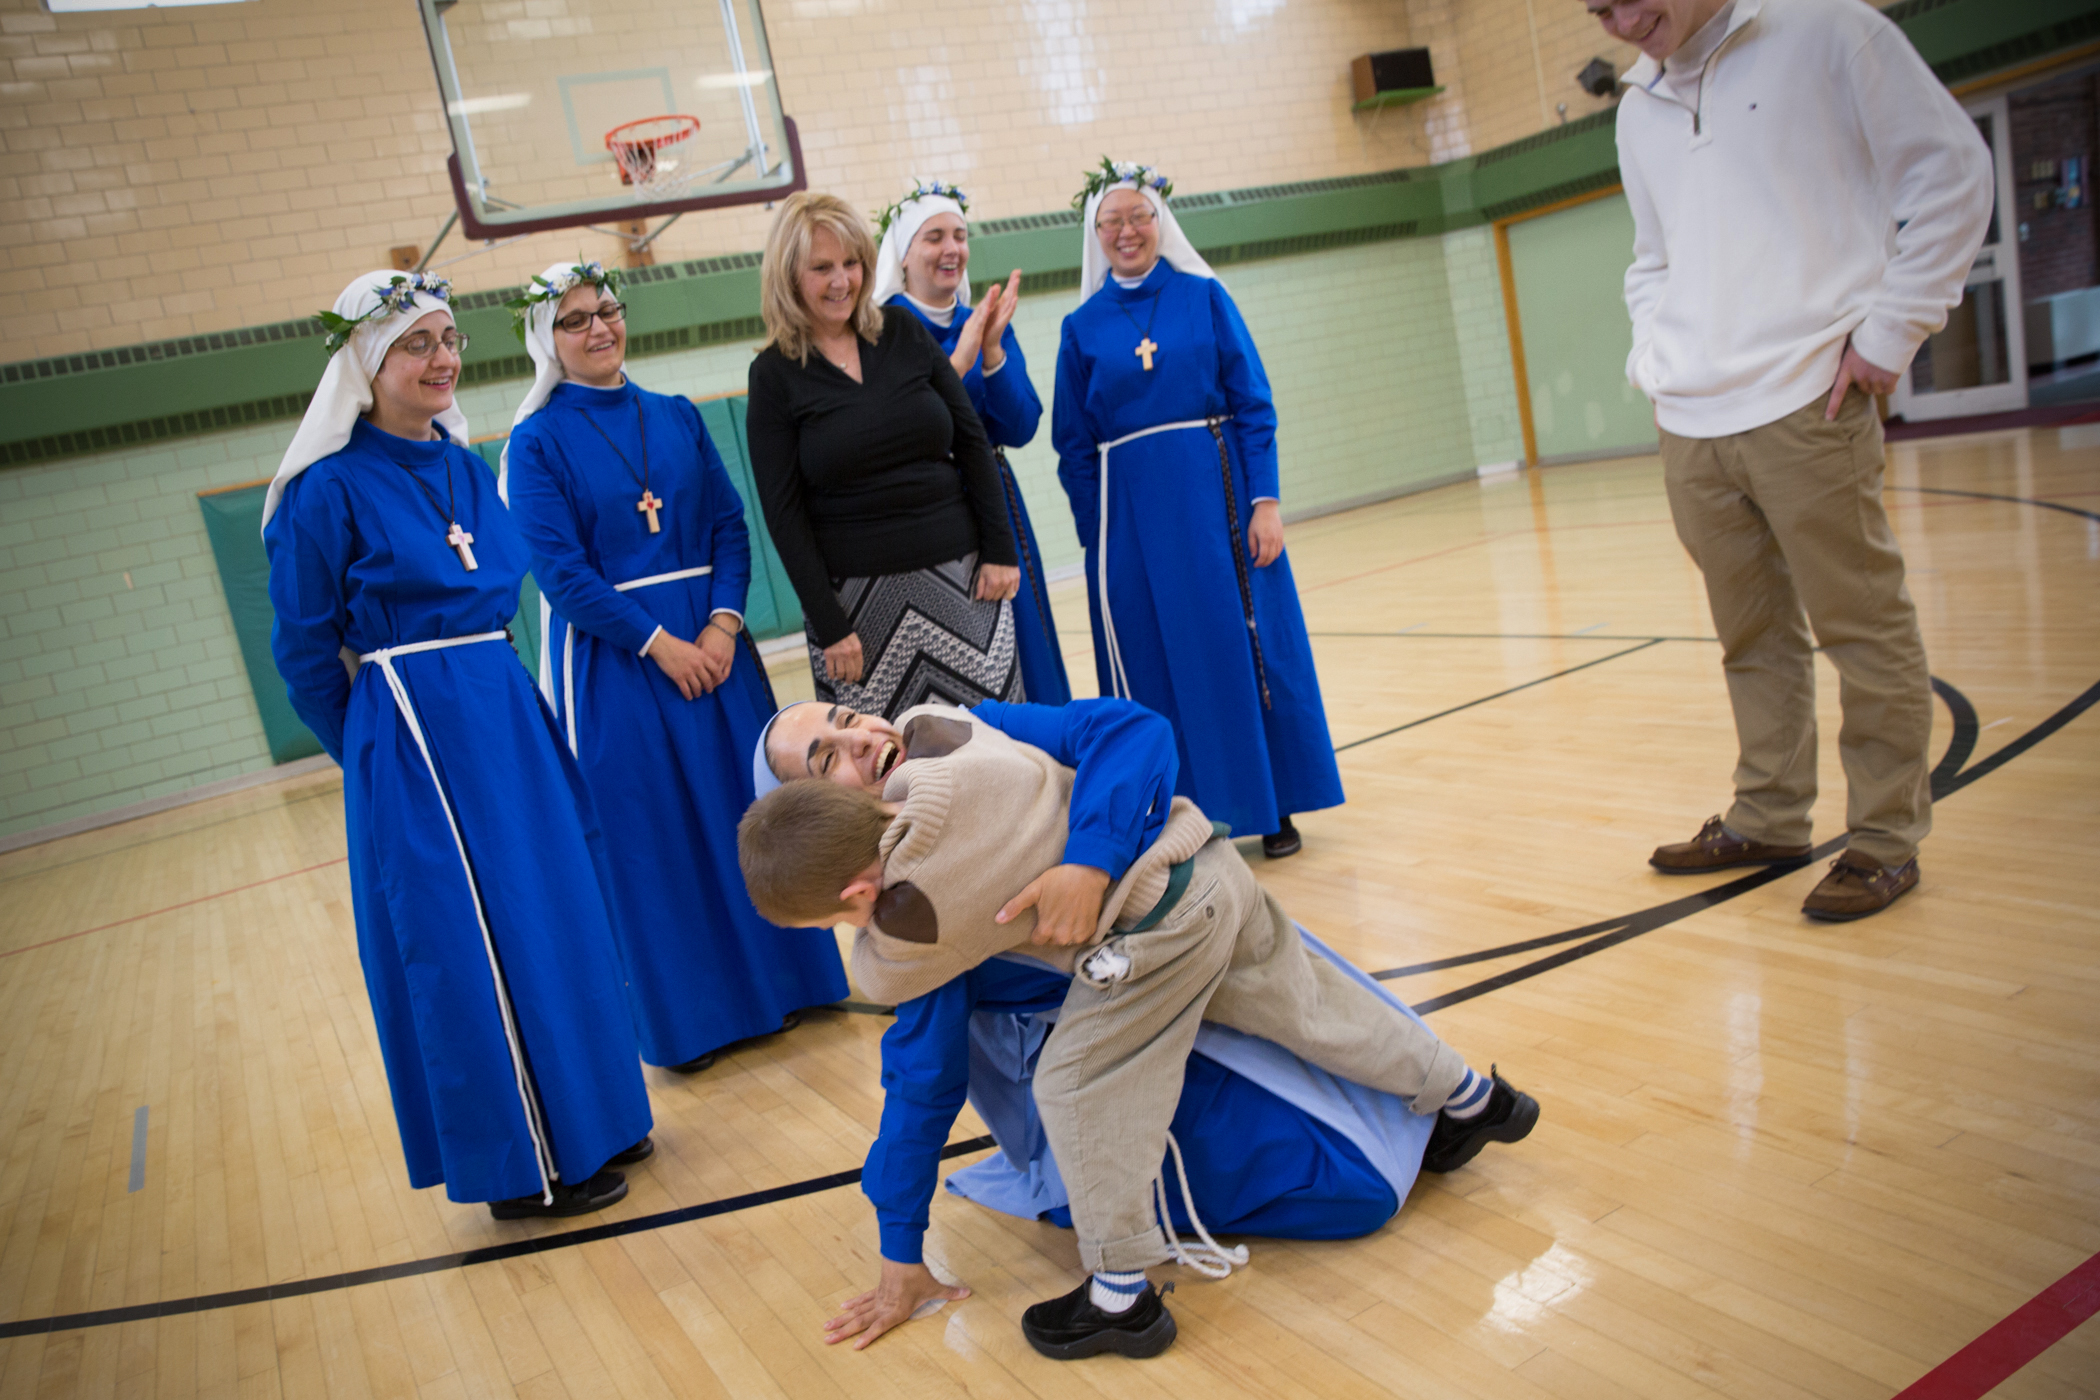 WEB-MOTHER-OLGA-HUG-BOY-George-Martell-Archdiocese-of-Boston-CC